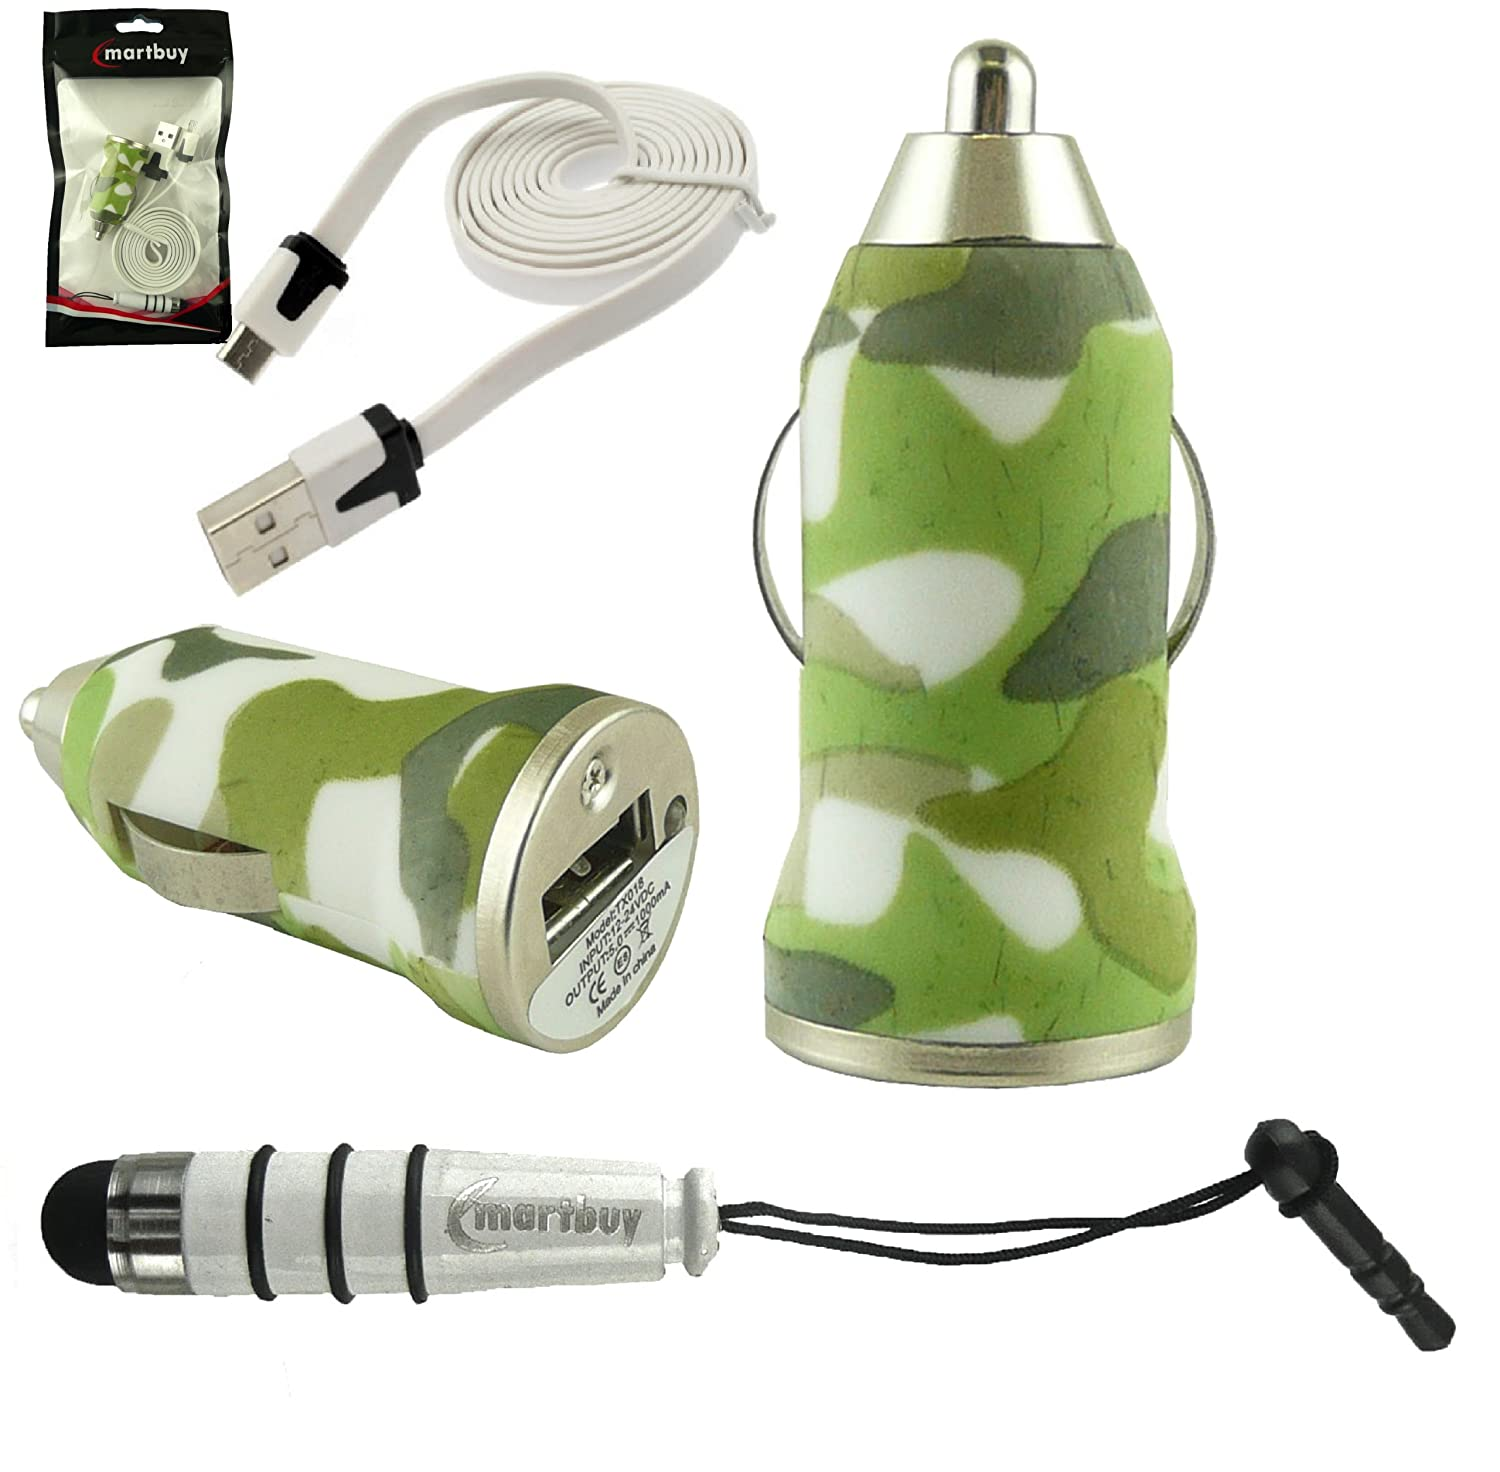 Green Camouflage Bullet 1 Amp USB Car Charger White Mini Metallic Stylus White Flat Anti-Tangle Micro USB Sync/Transfer Data & Charge Cable Emartbuy Trio Pack For LG K7/LG K10/LG Optimus Zone 3